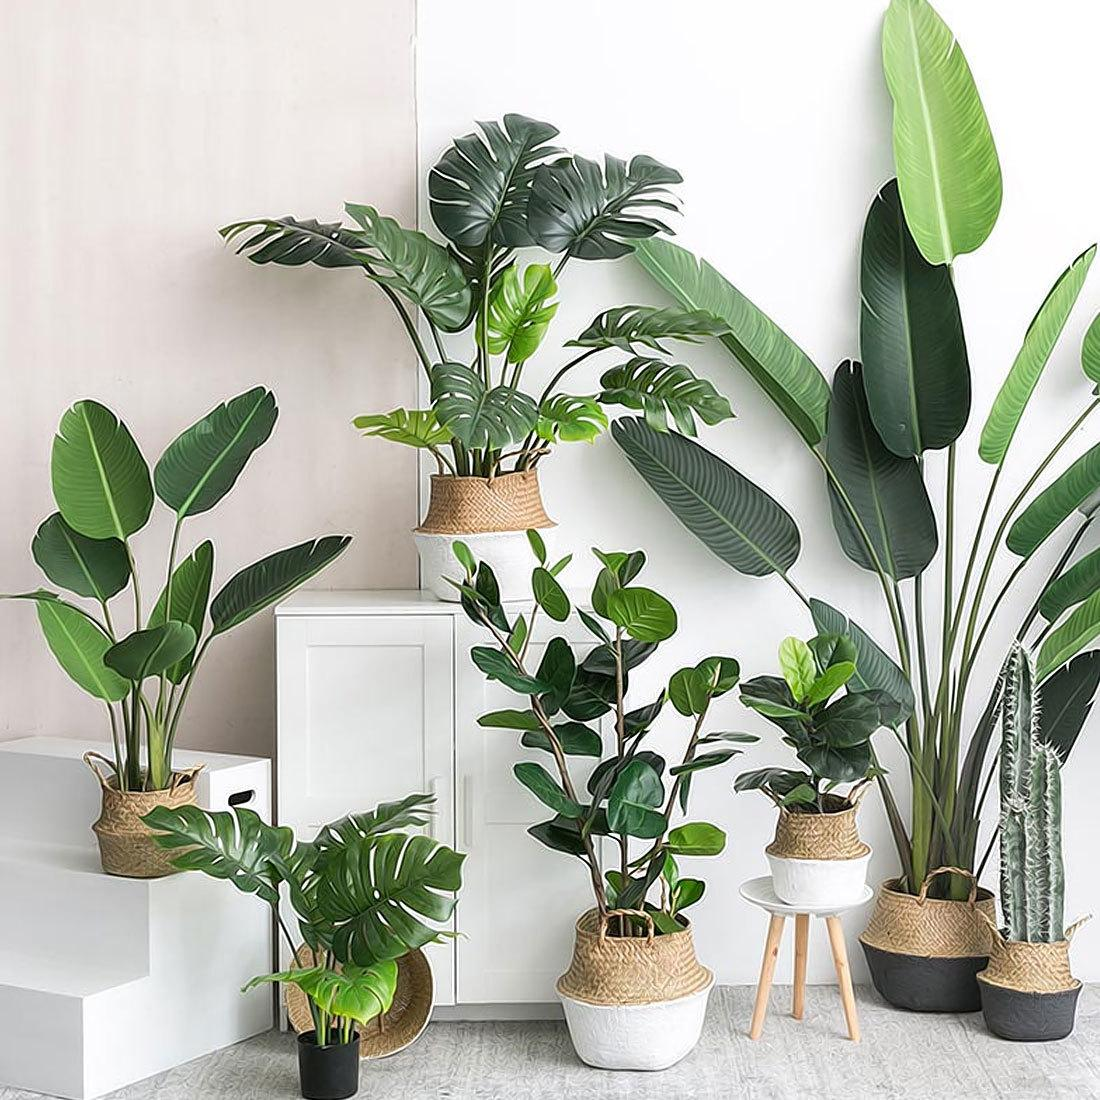 2019 Artificial Plants Green Turtle Leaves Garden Home Decor 1